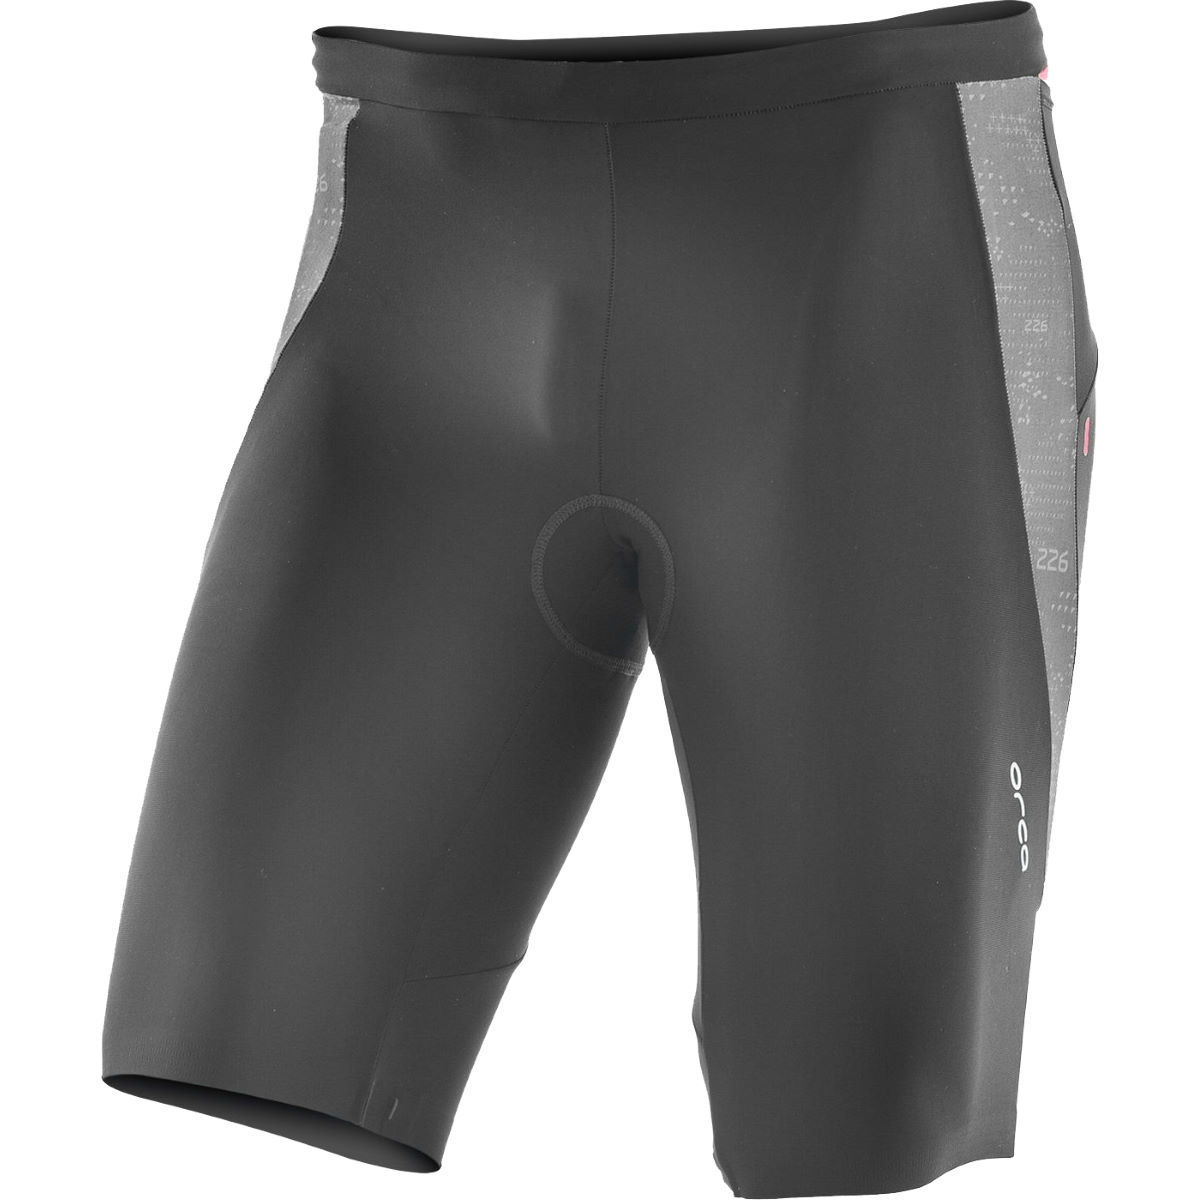 Orca 226 Perform Tri Tech Pant - Culotes de triatlón